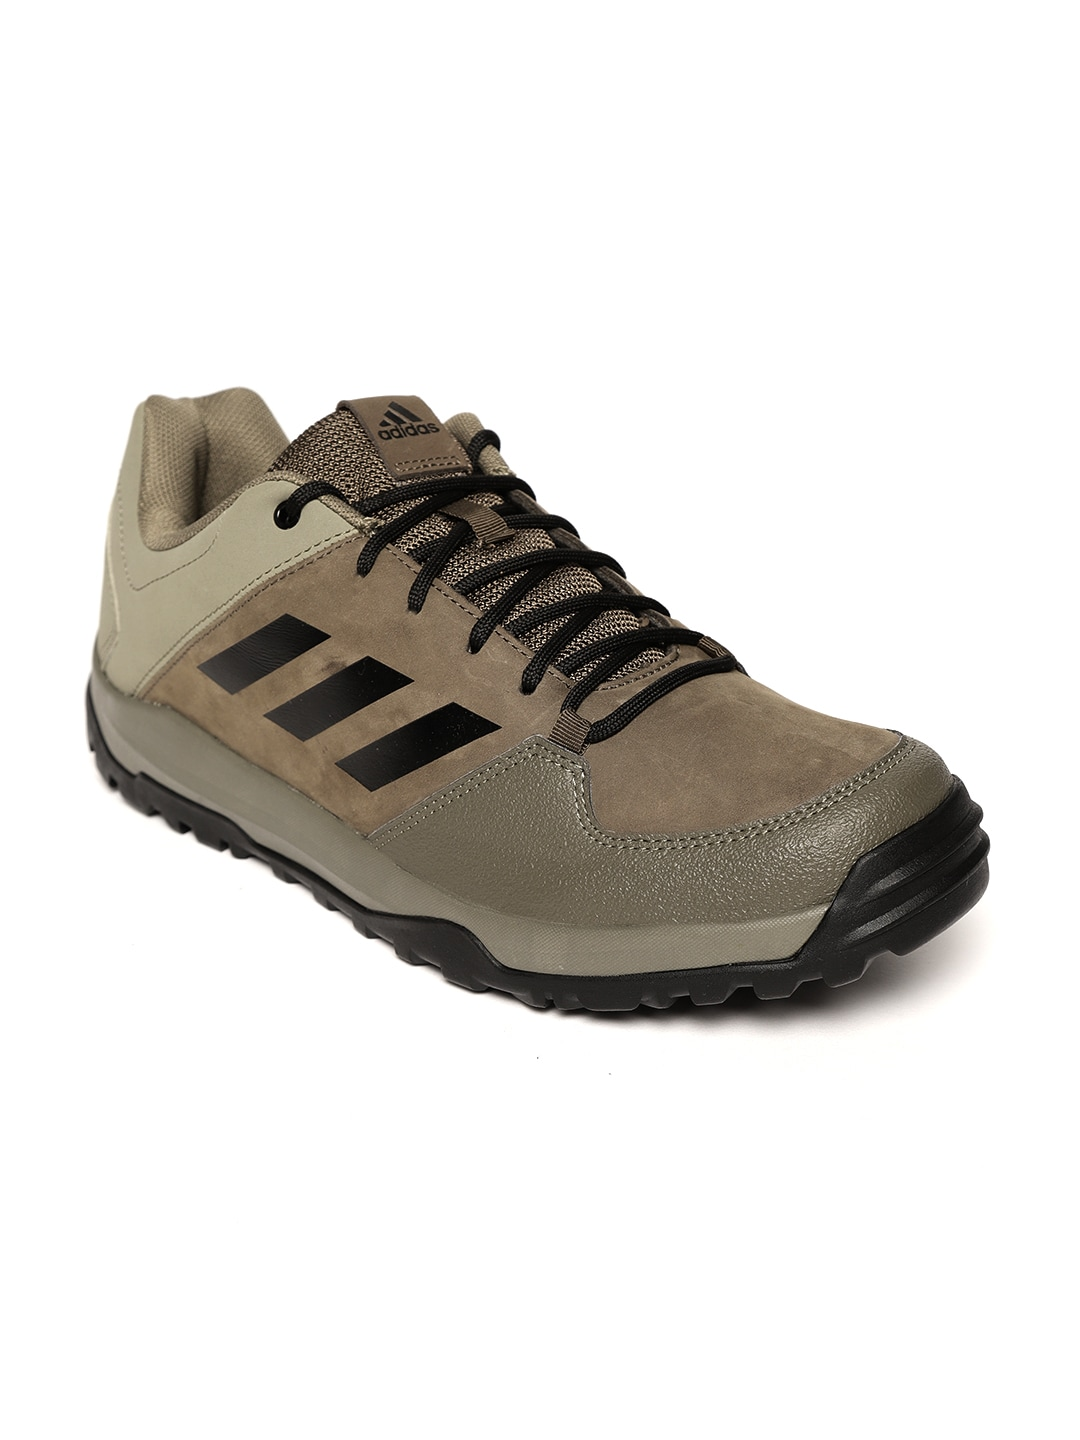 59f4d6fdf Mossimo Footwear - Buy Mossimo Footwear online in India